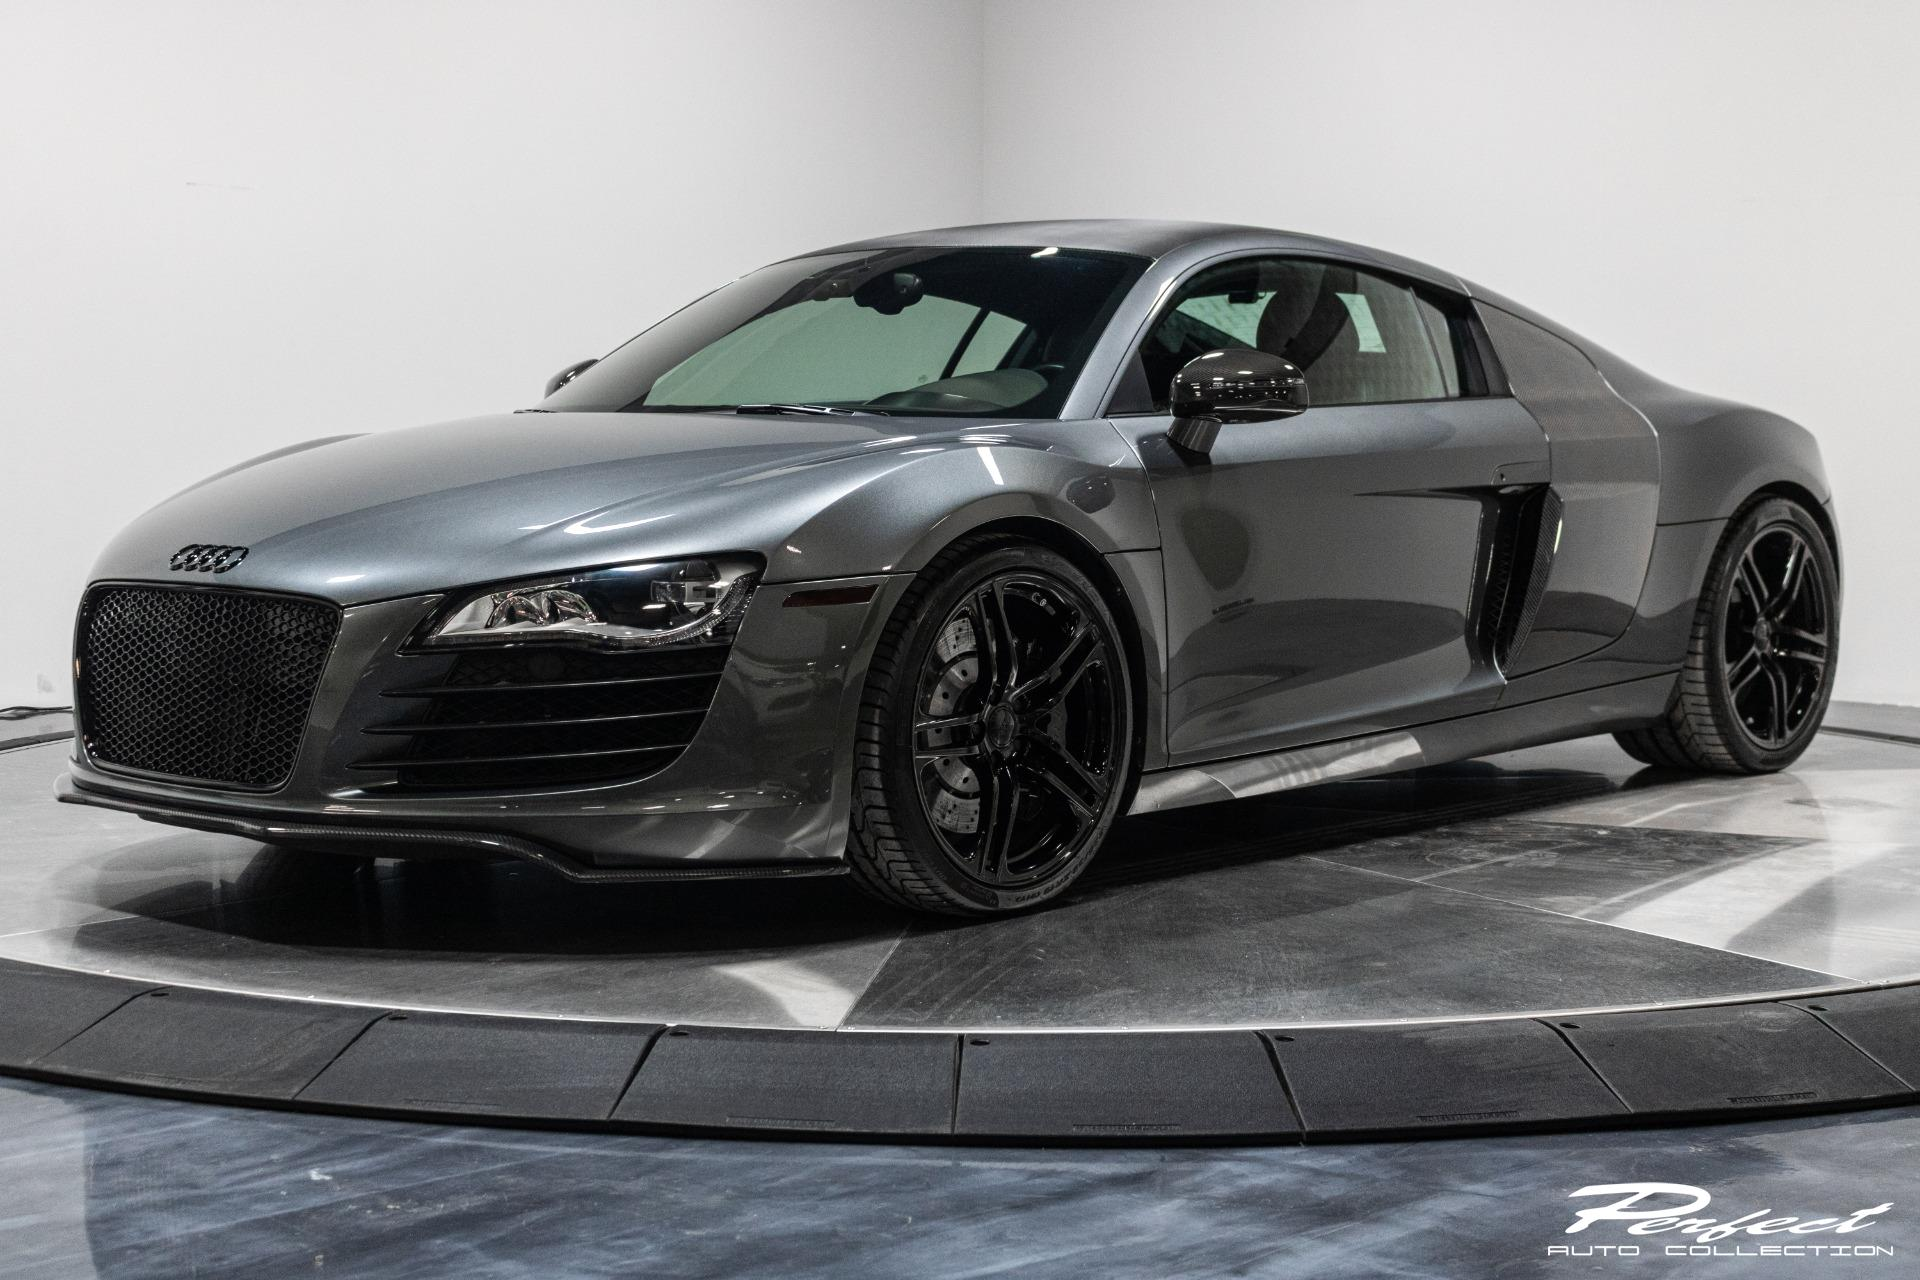 Used 2012 Audi R8 4.2 quattro for sale Sold at Perfect Auto Collection in Akron OH 44310 1